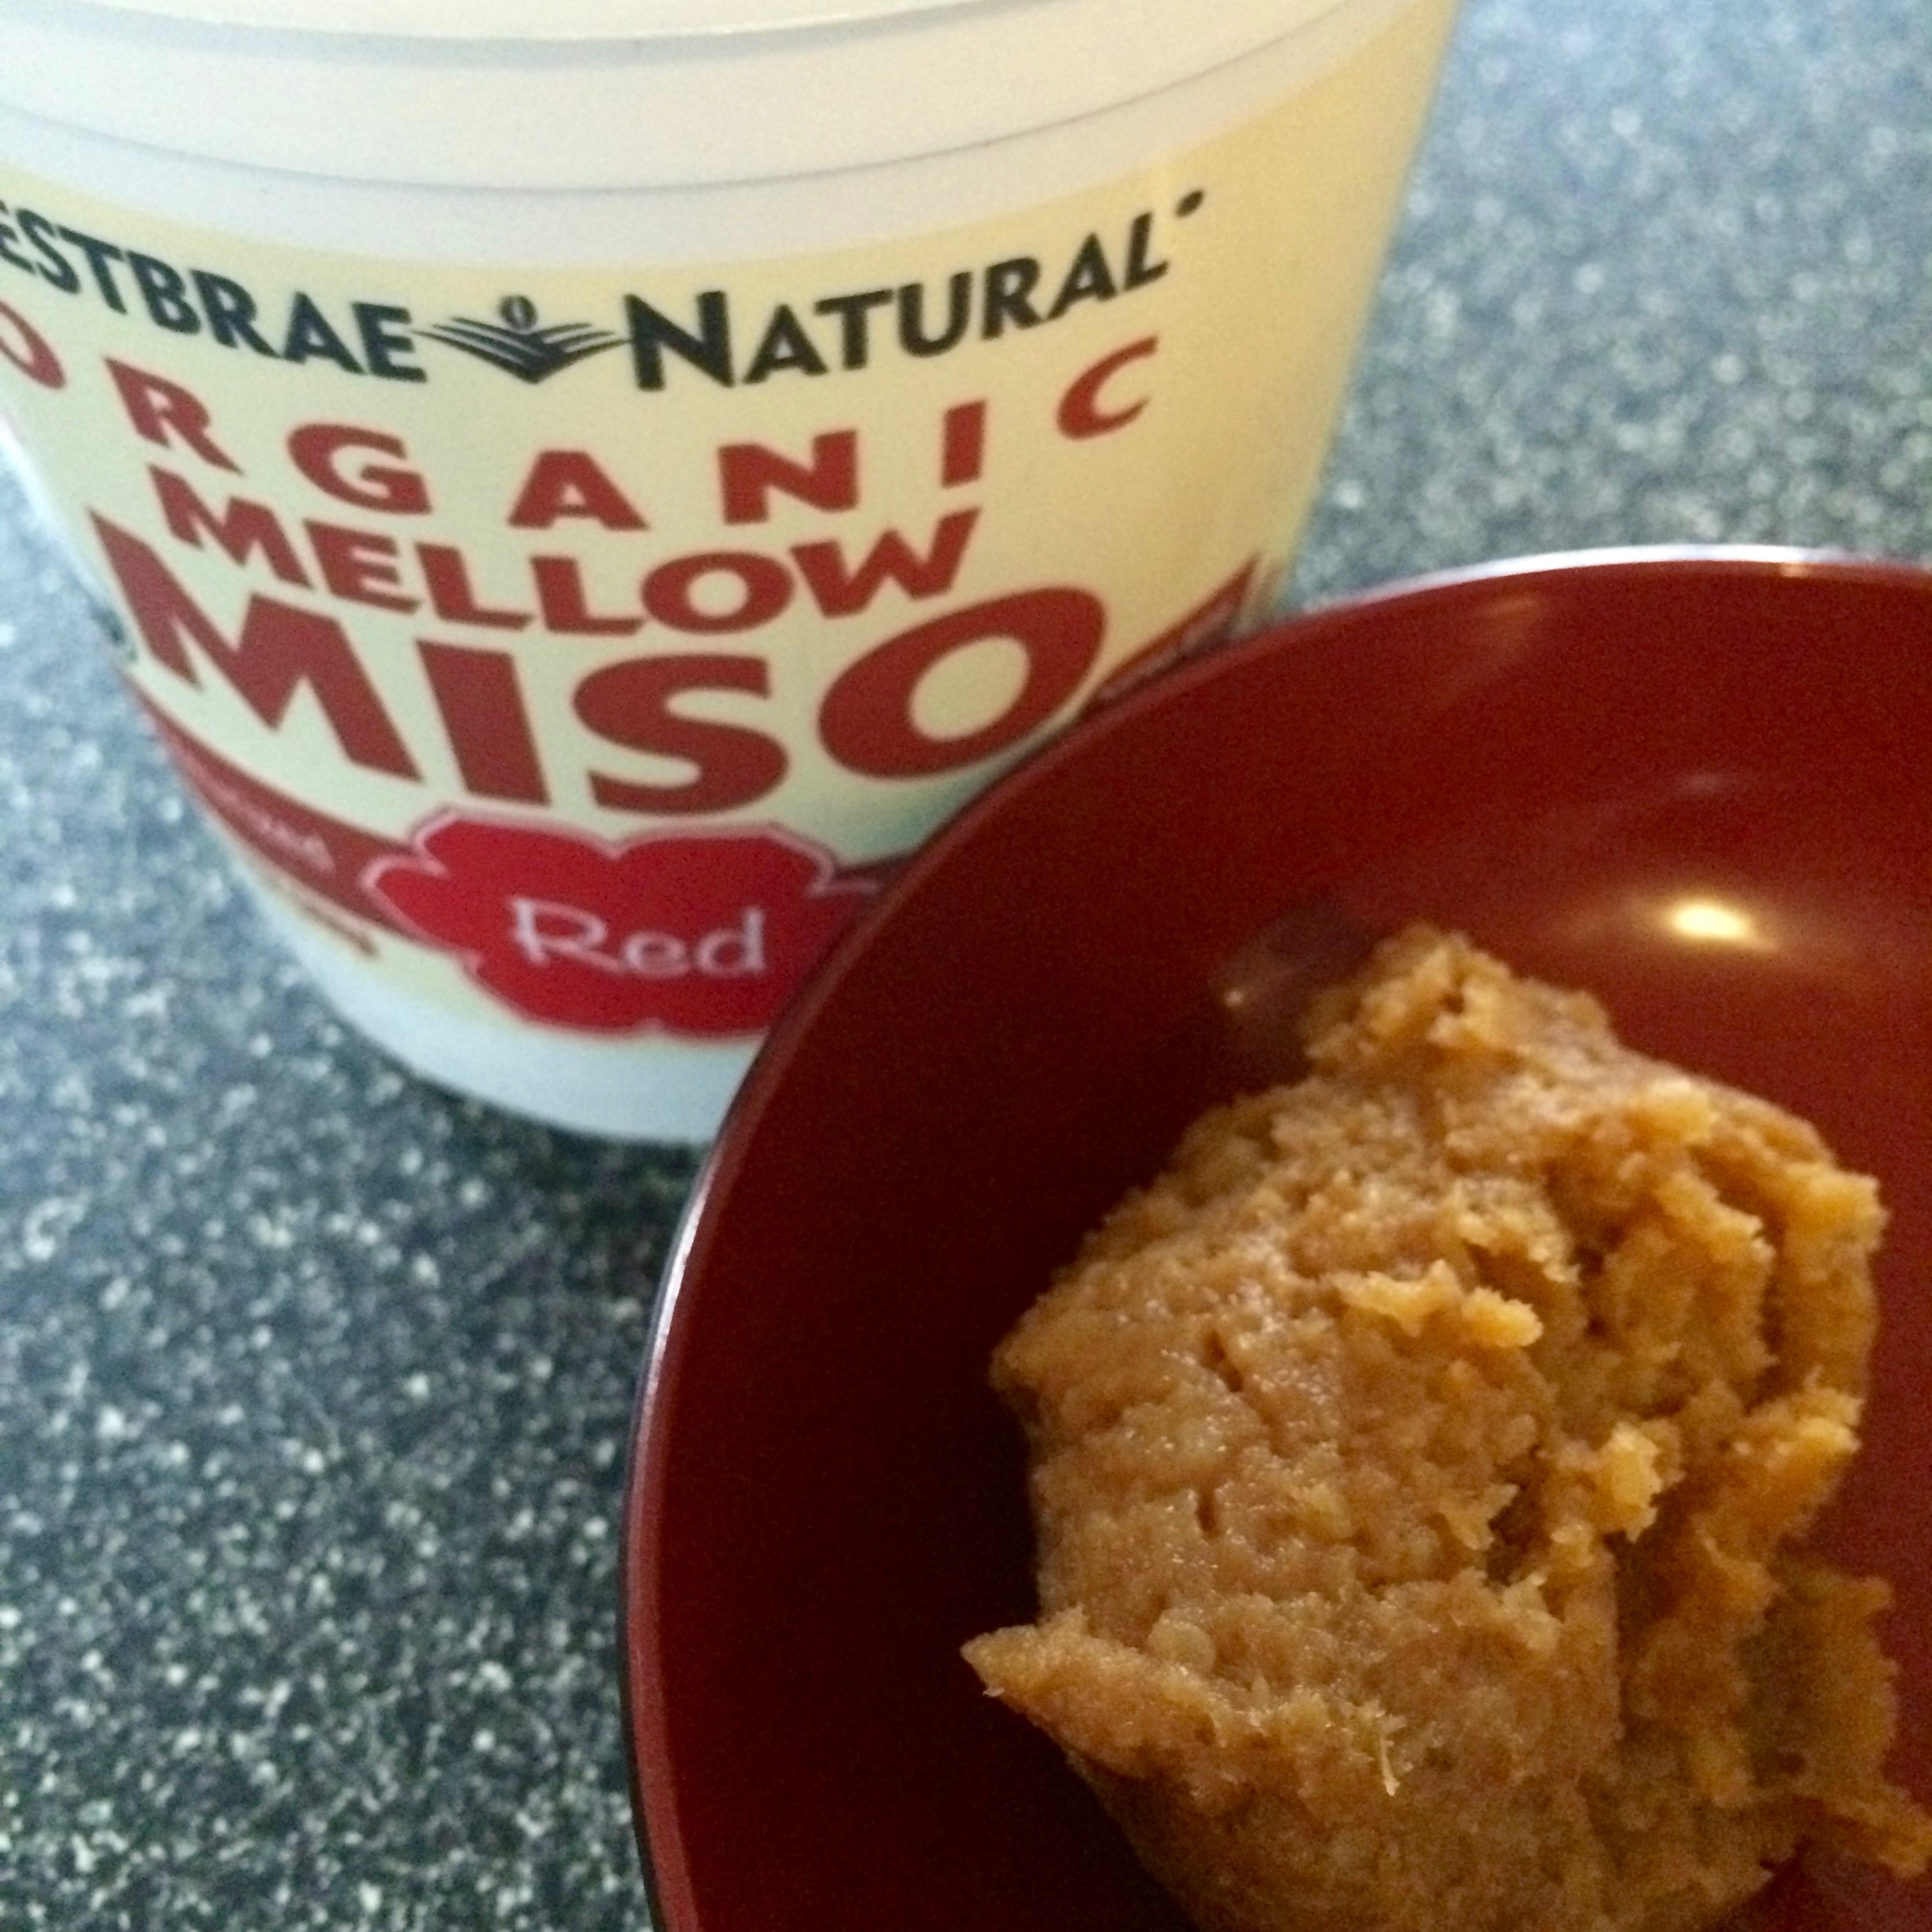 Red Miso paste